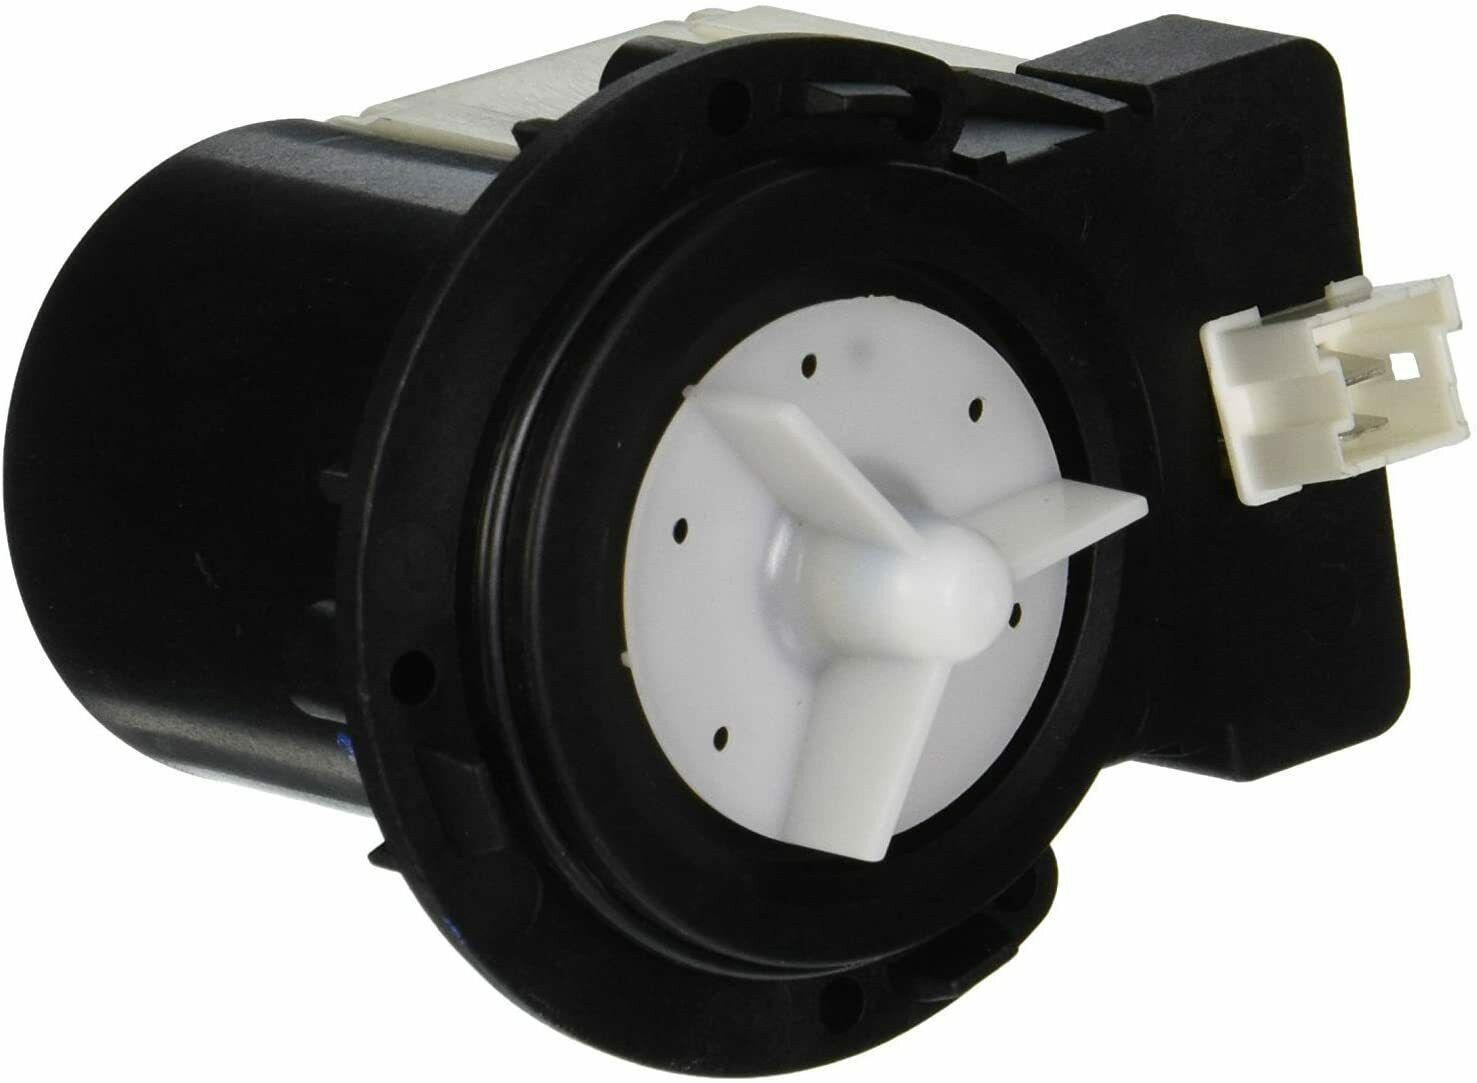 New Replacement Washer Drain Pump Motor 62716080 By OEM Parts Manufacturer